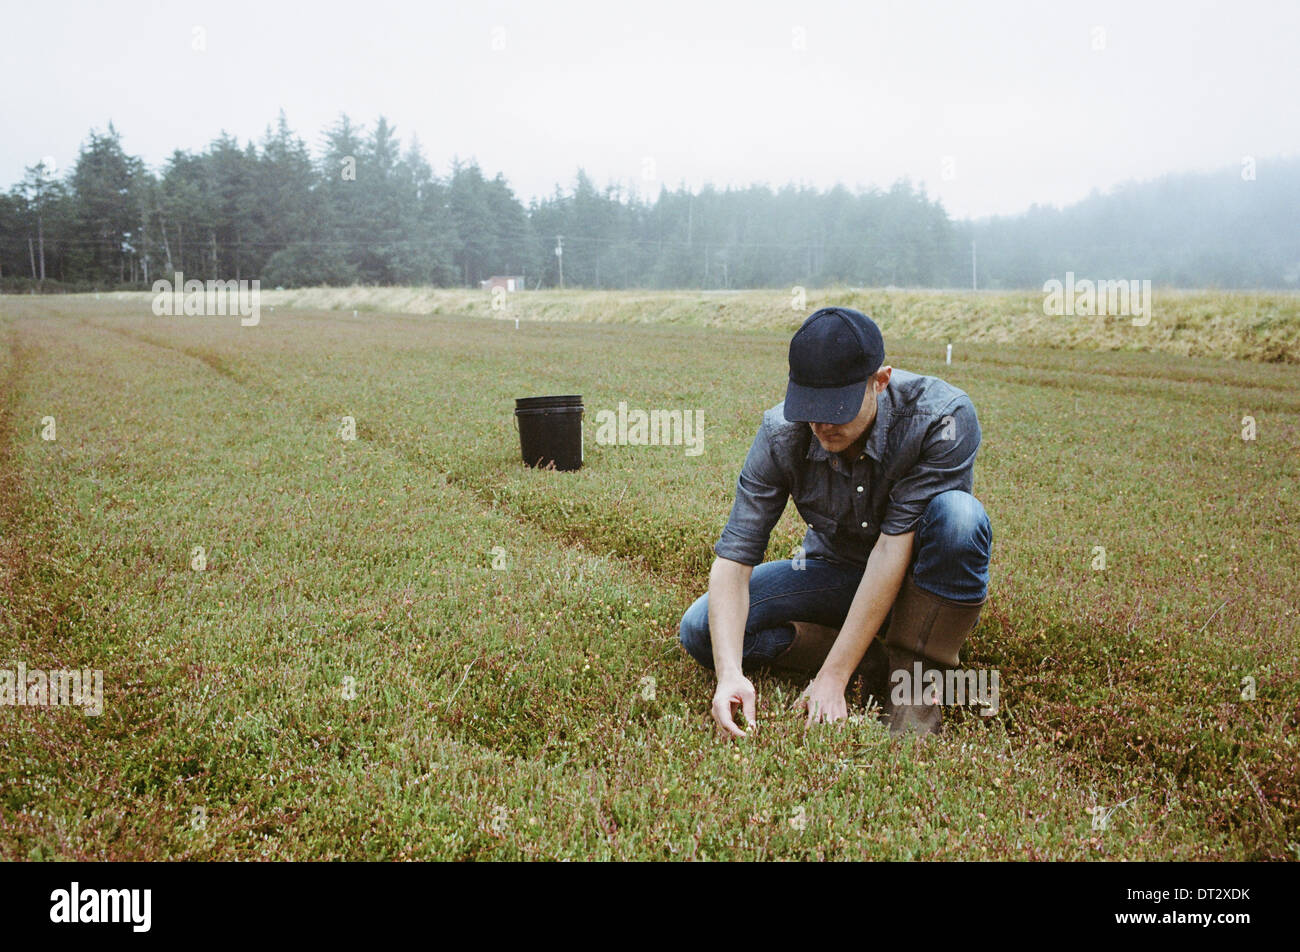 A cranberry farm in Massachusetts Crops in the fields A young man working on the land harvesting the crop Stock Photo